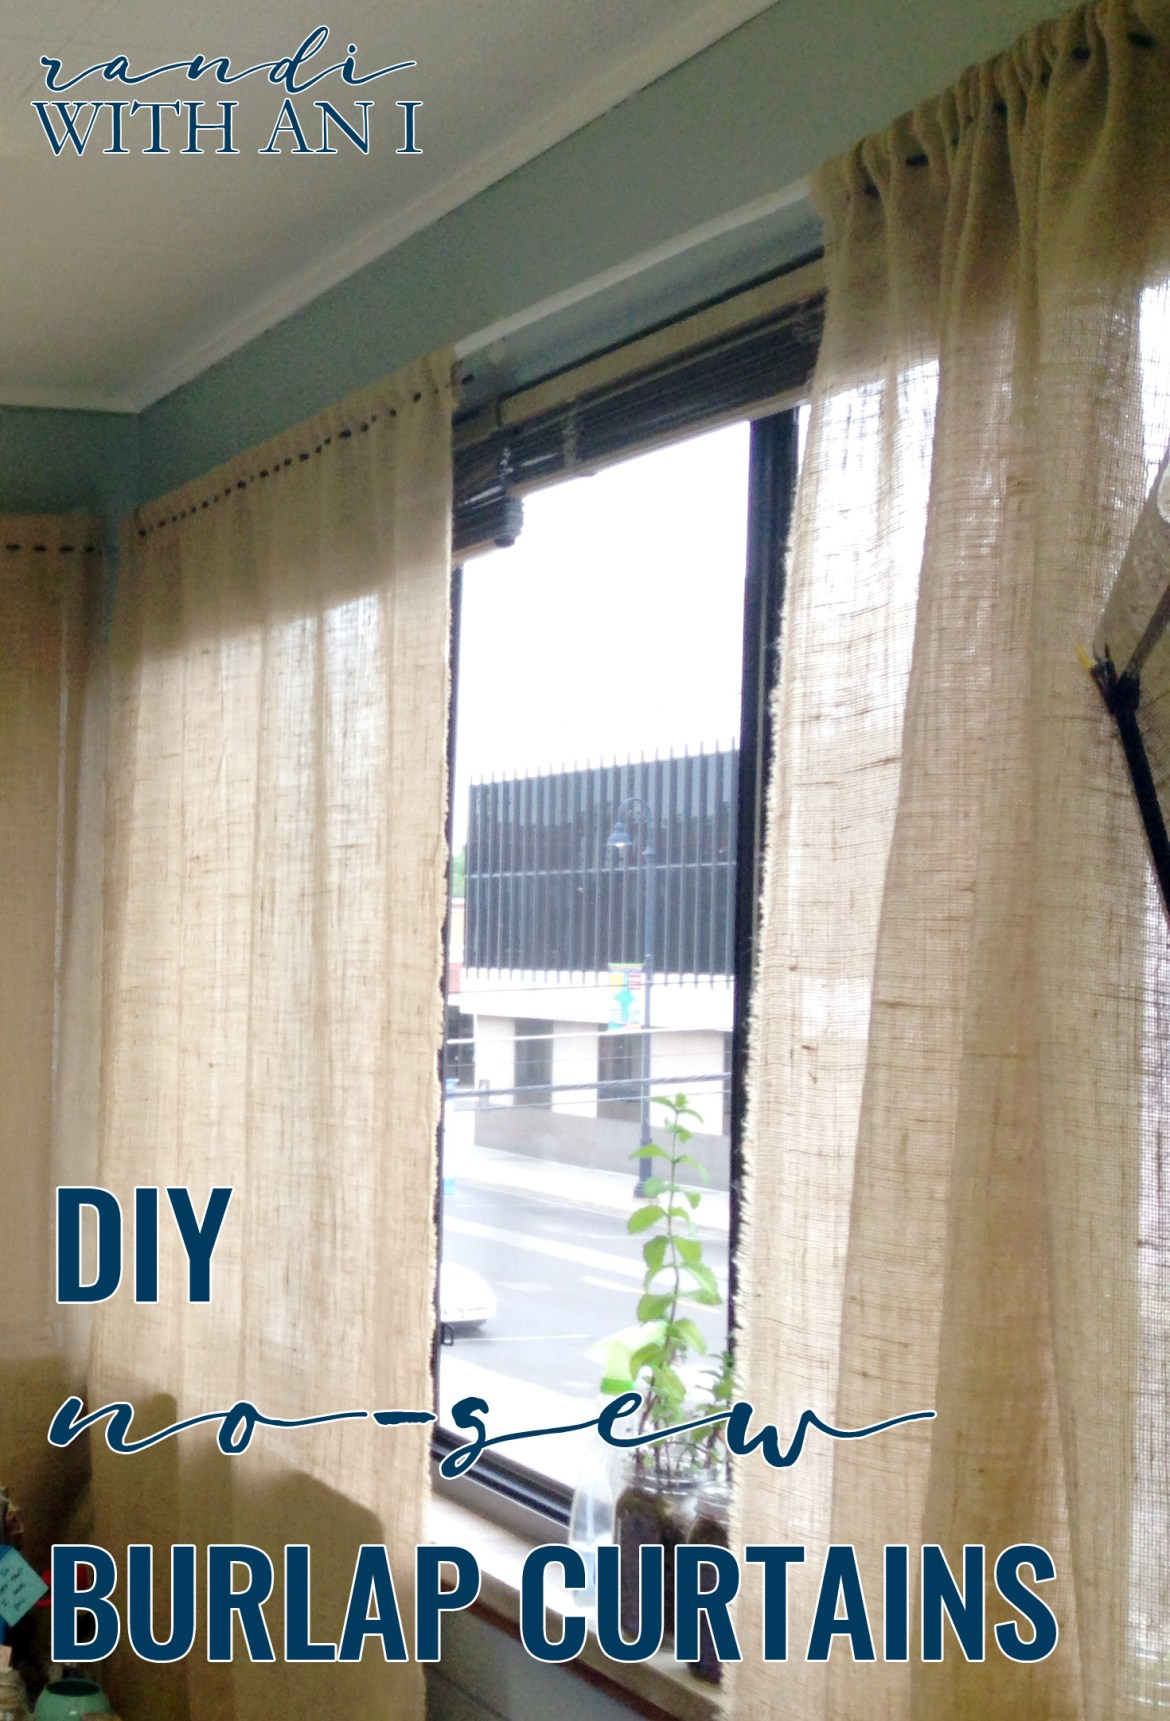 No Sew Burlap Curtains Randi With An I